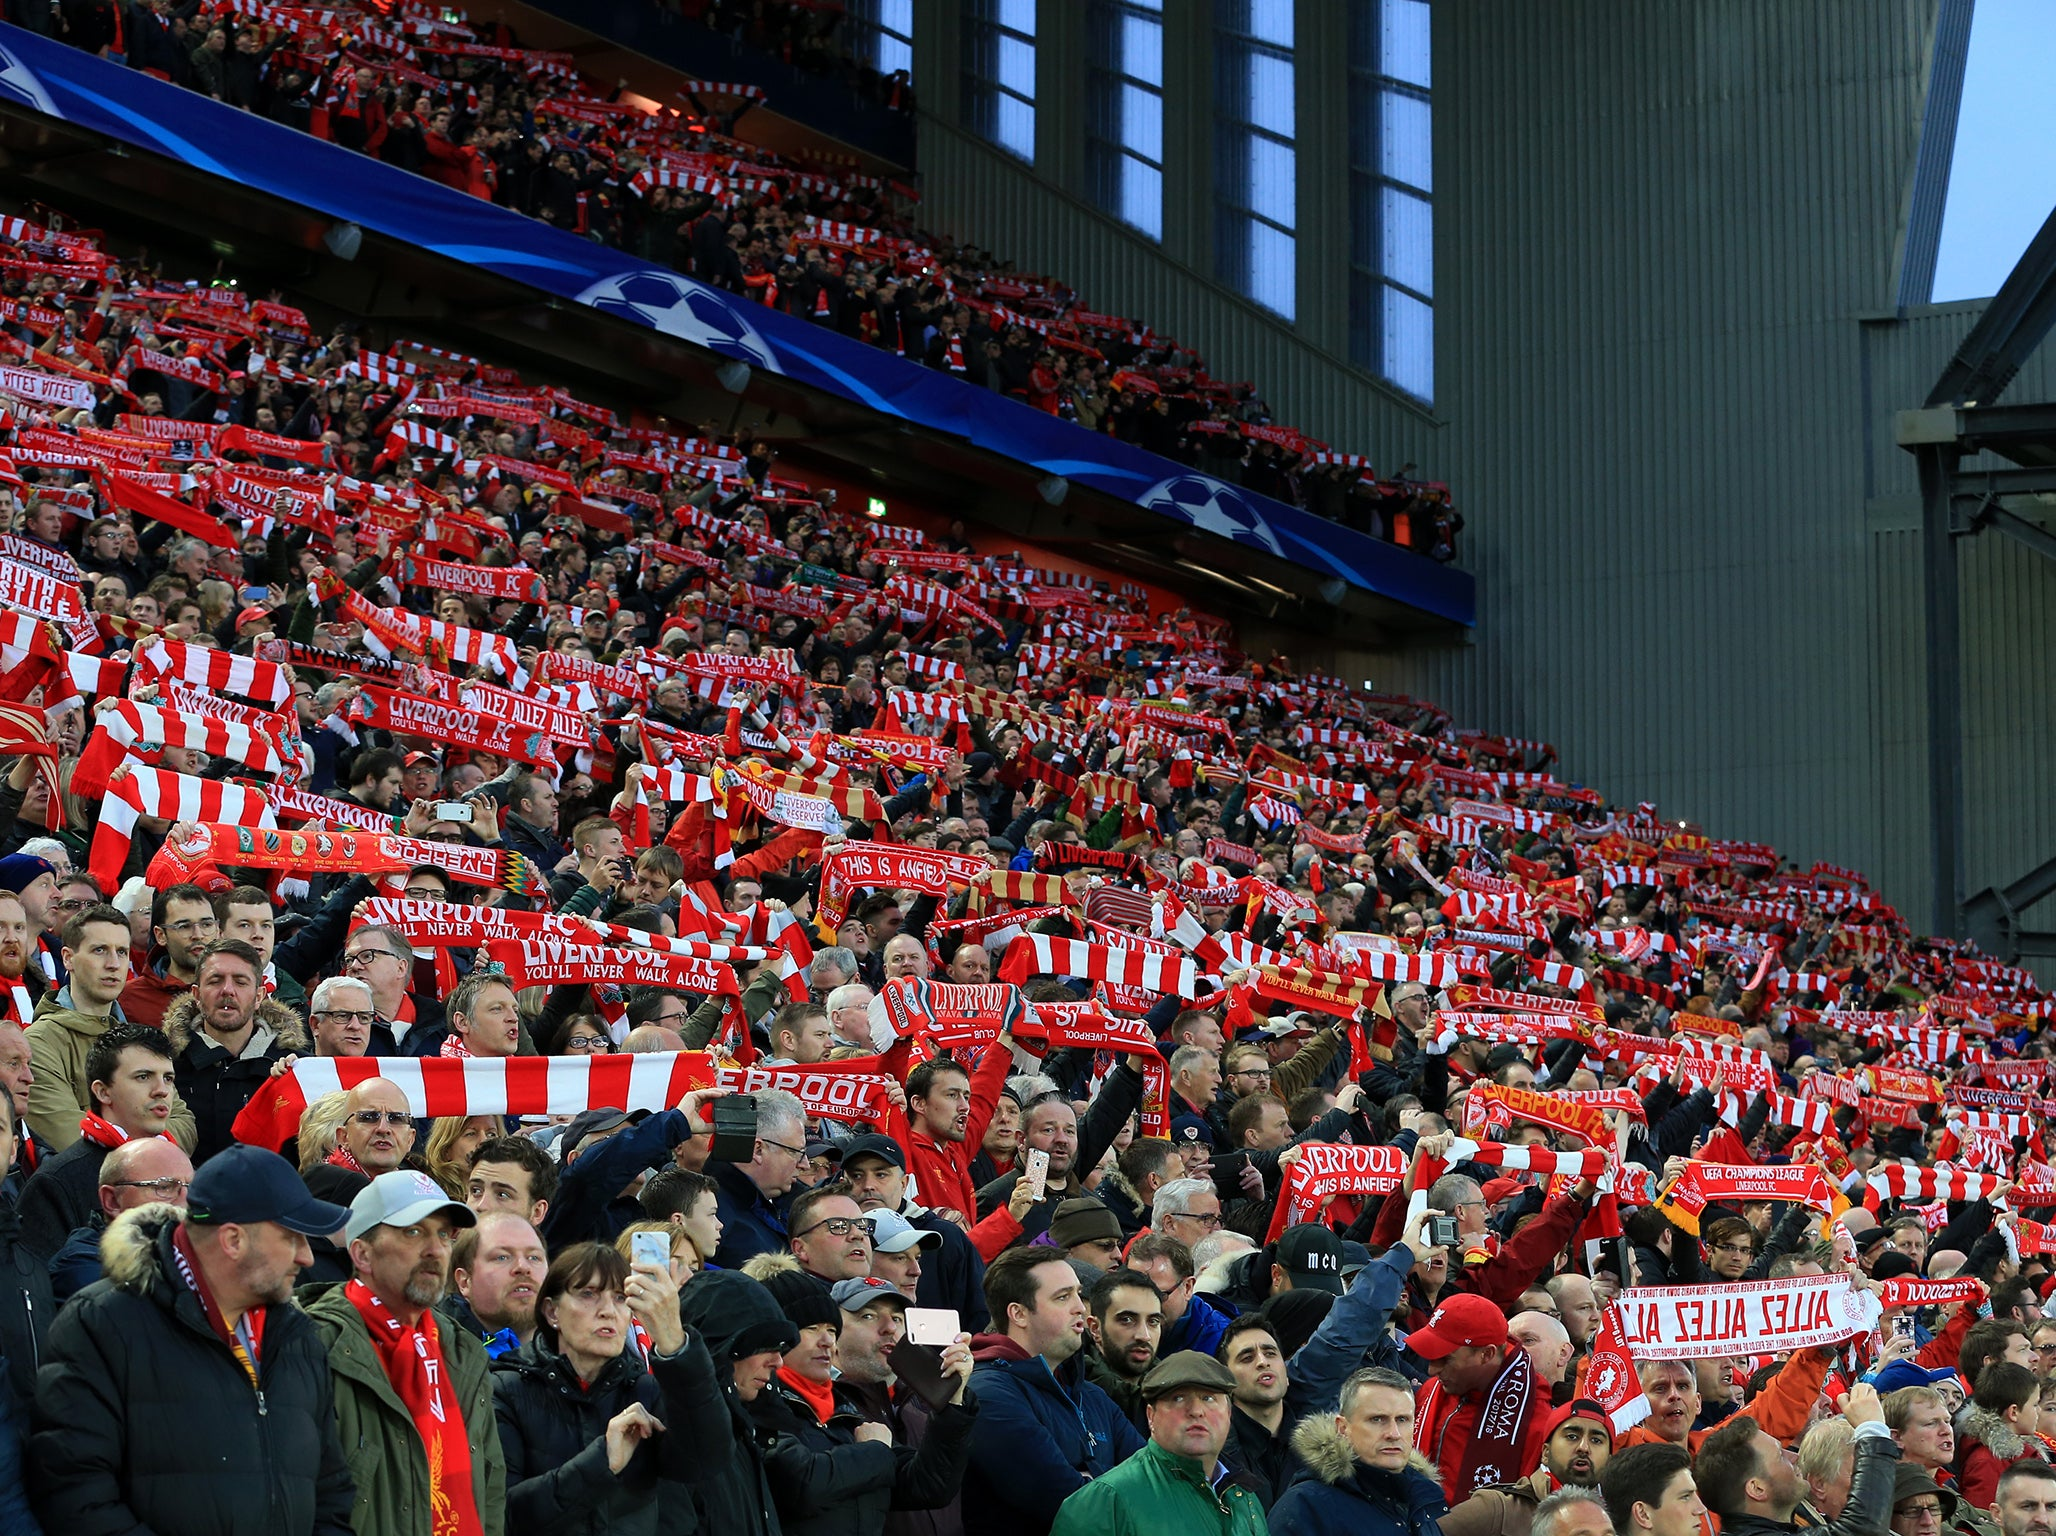 Instead of 'why always Liverpool?' we should be asking 'why always Rome?'